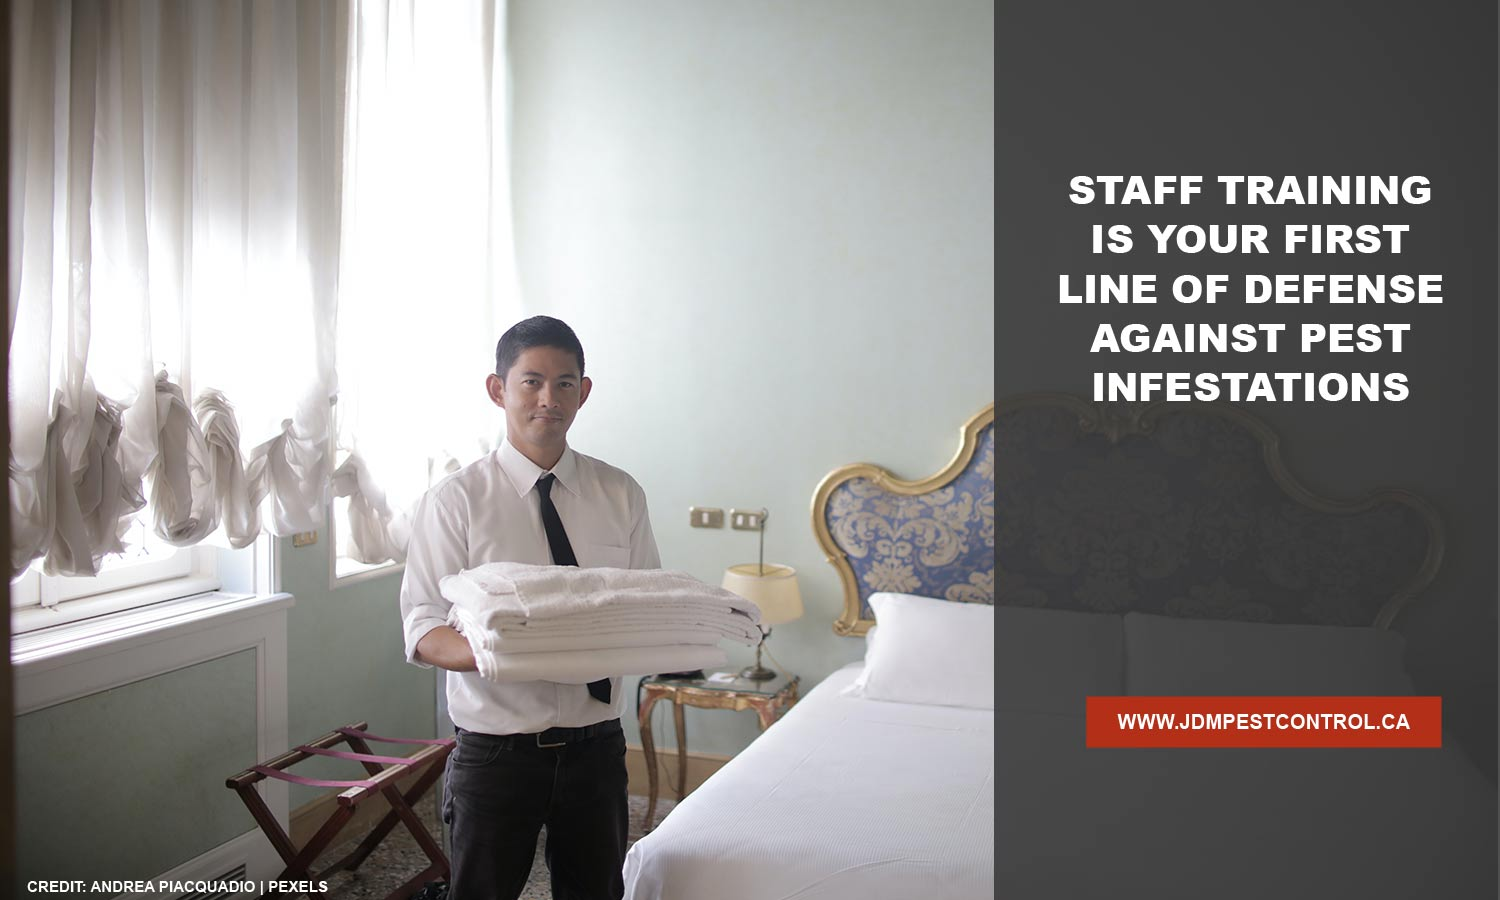 Staff training is your first line of defense against pest infestations